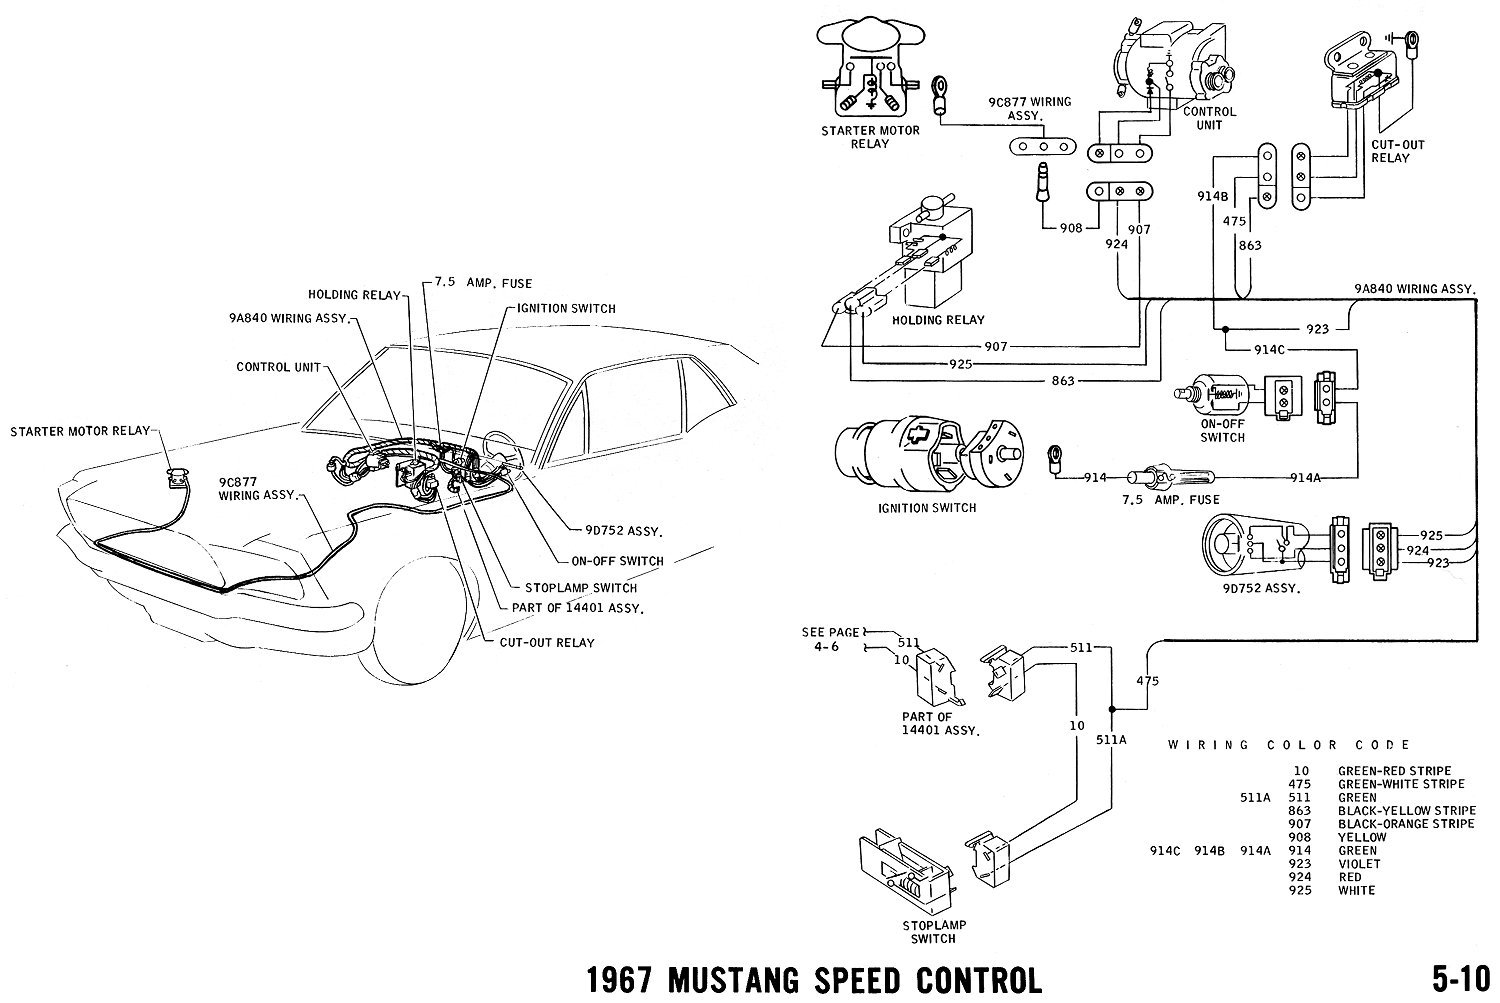 67speed 1967 mustang wiring and vacuum diagrams average joe restoration engine wiring diagram 1967 mustang v8 at mifinder.co